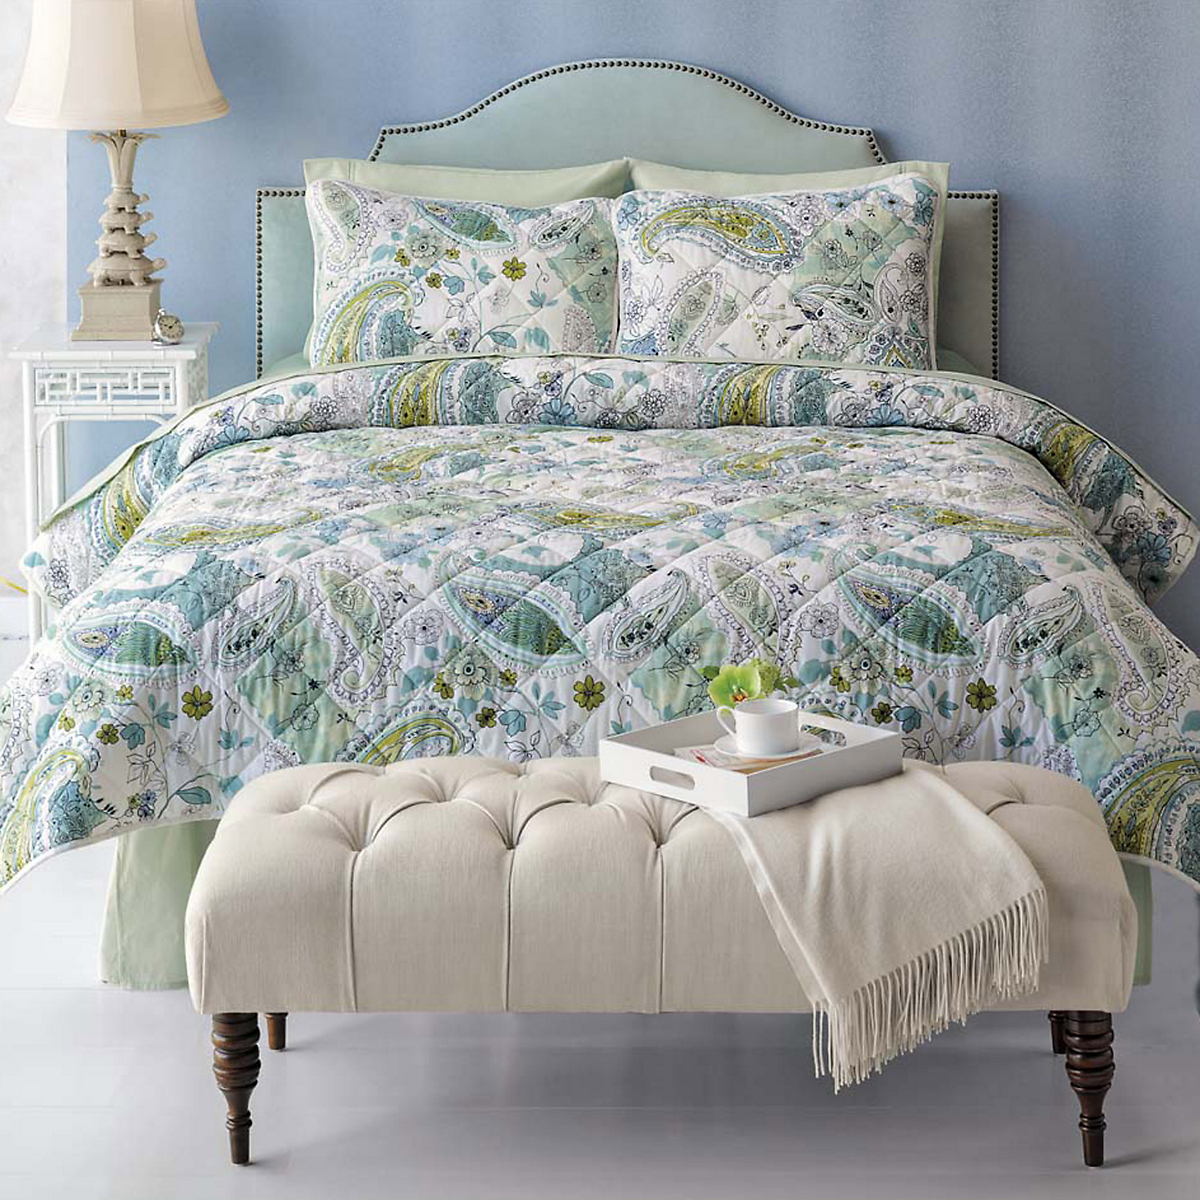 Laurel Heights Bedding & Mandalay Headboard